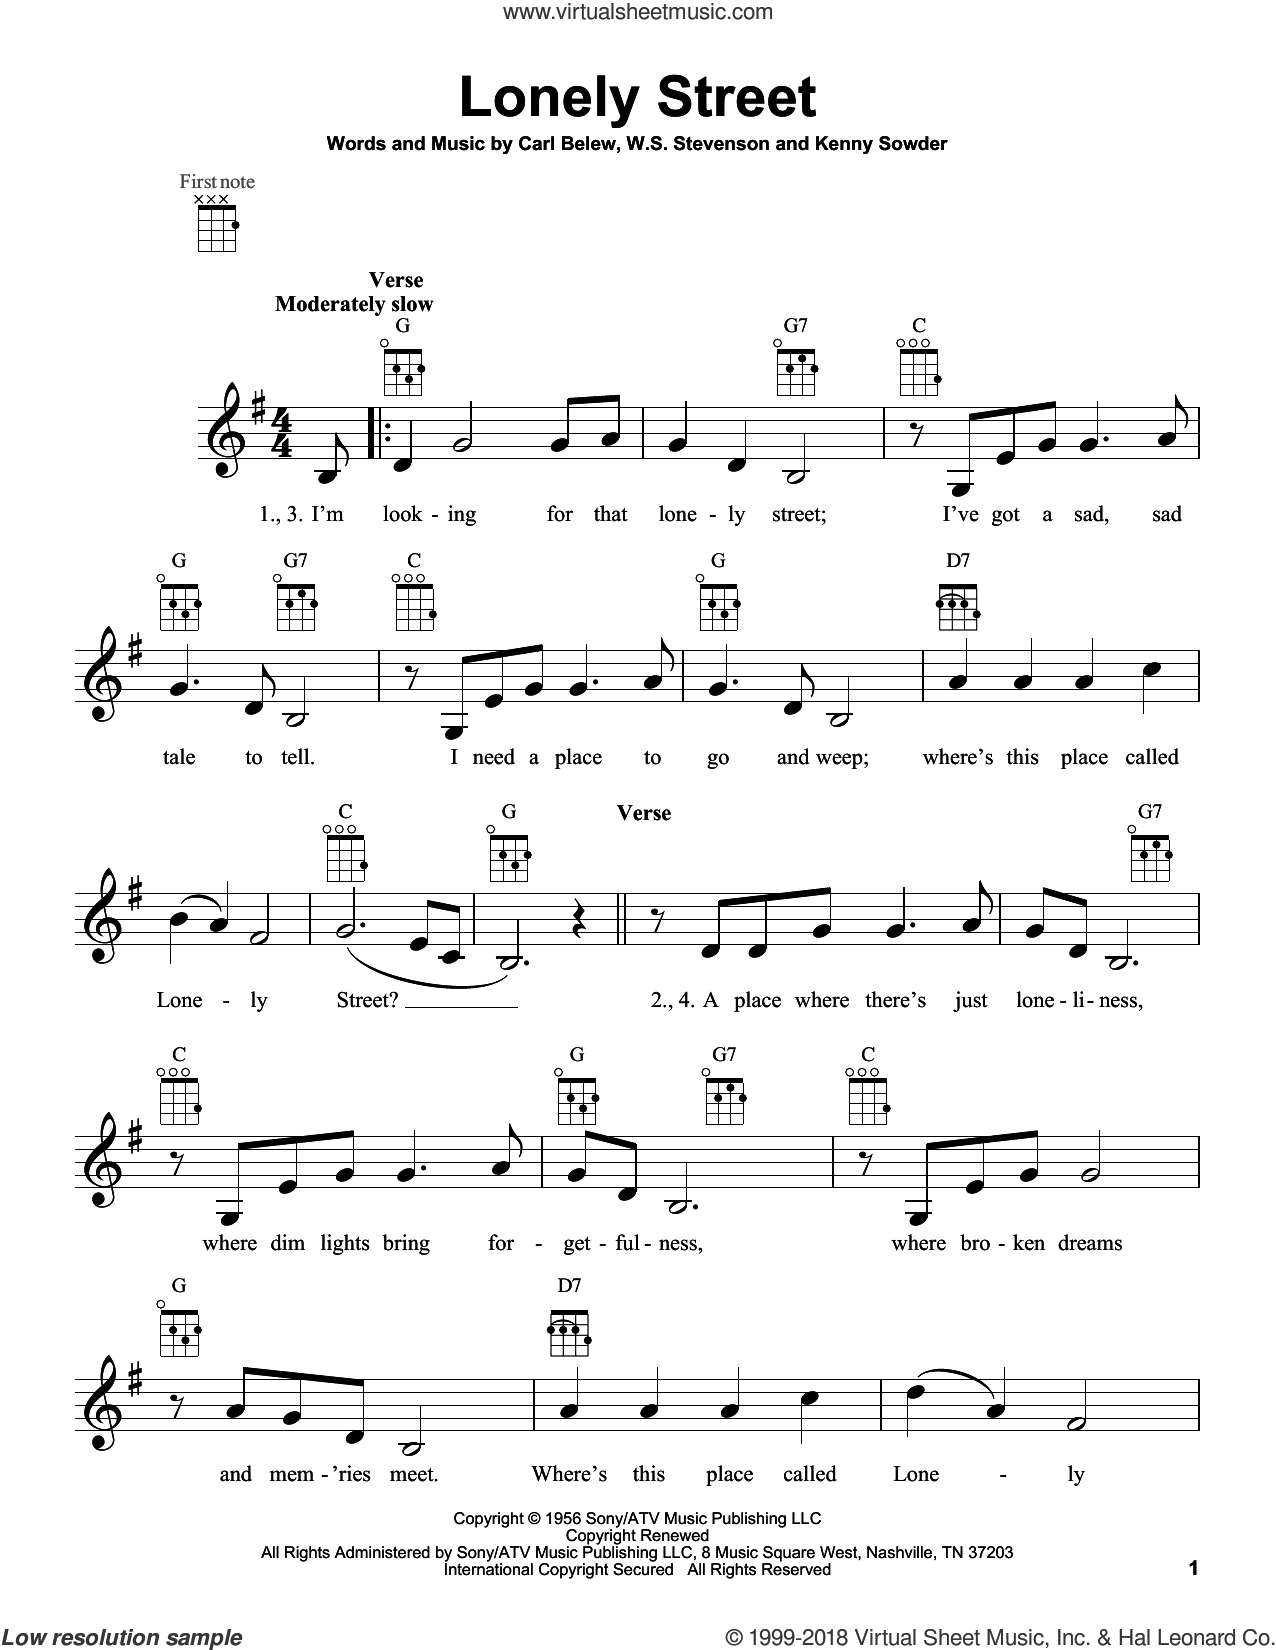 Lonely Street sheet music for ukulele by Andy Williams